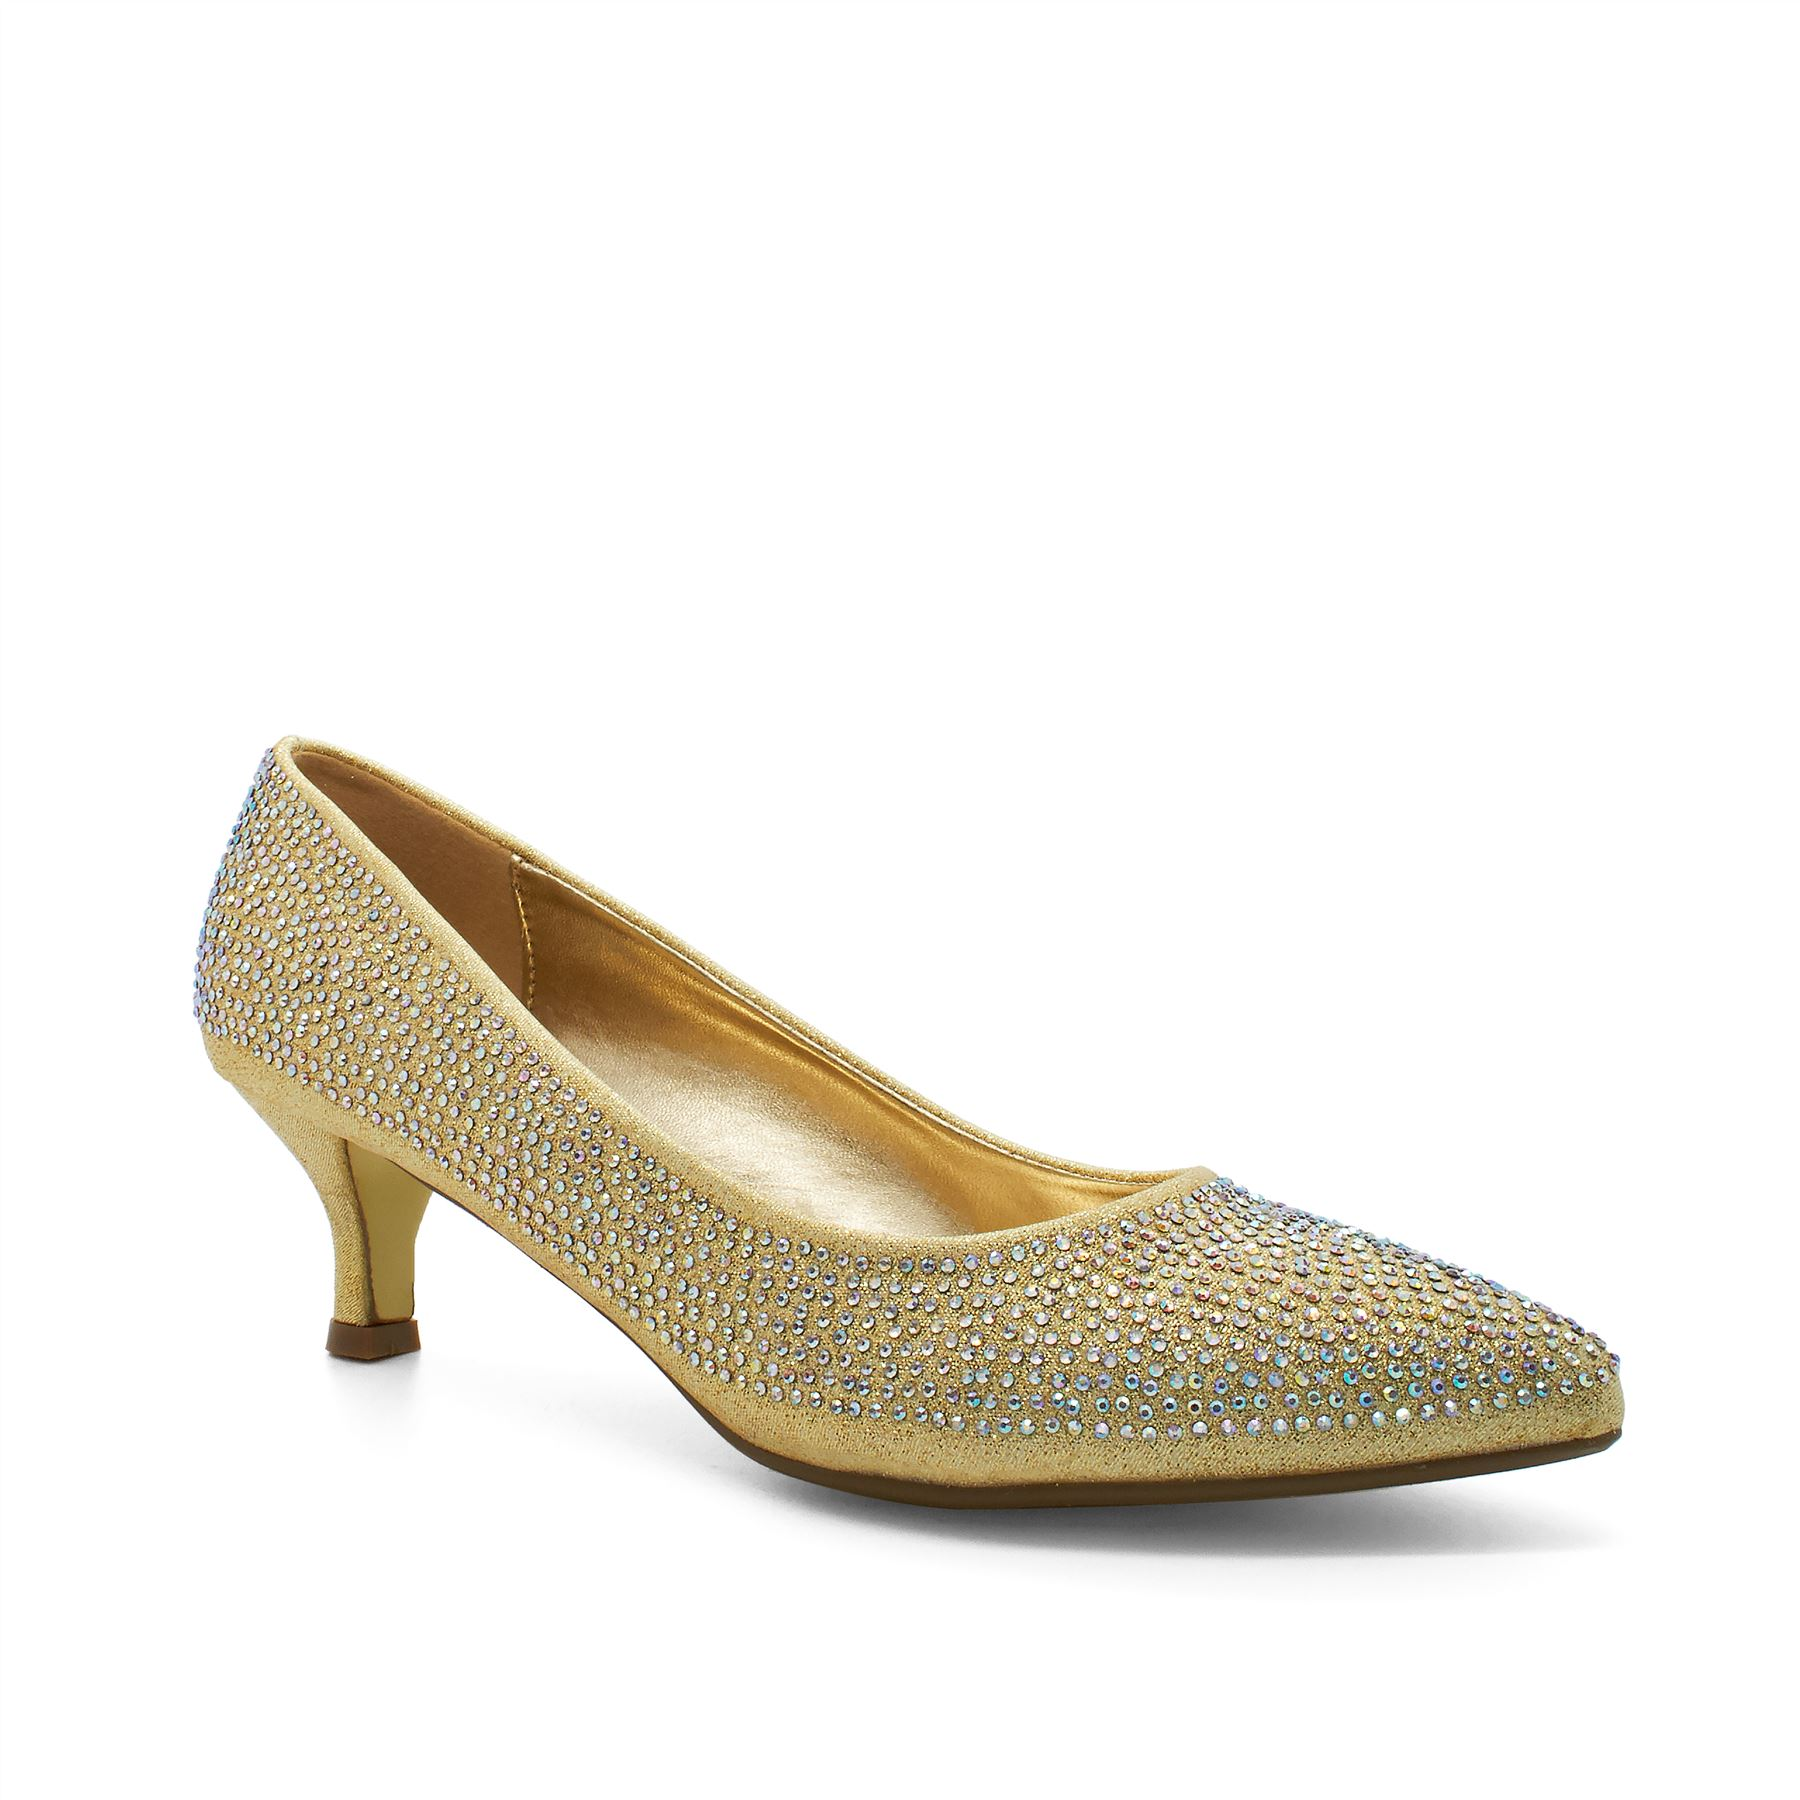 Ladies Shoes Uk Size Pumps